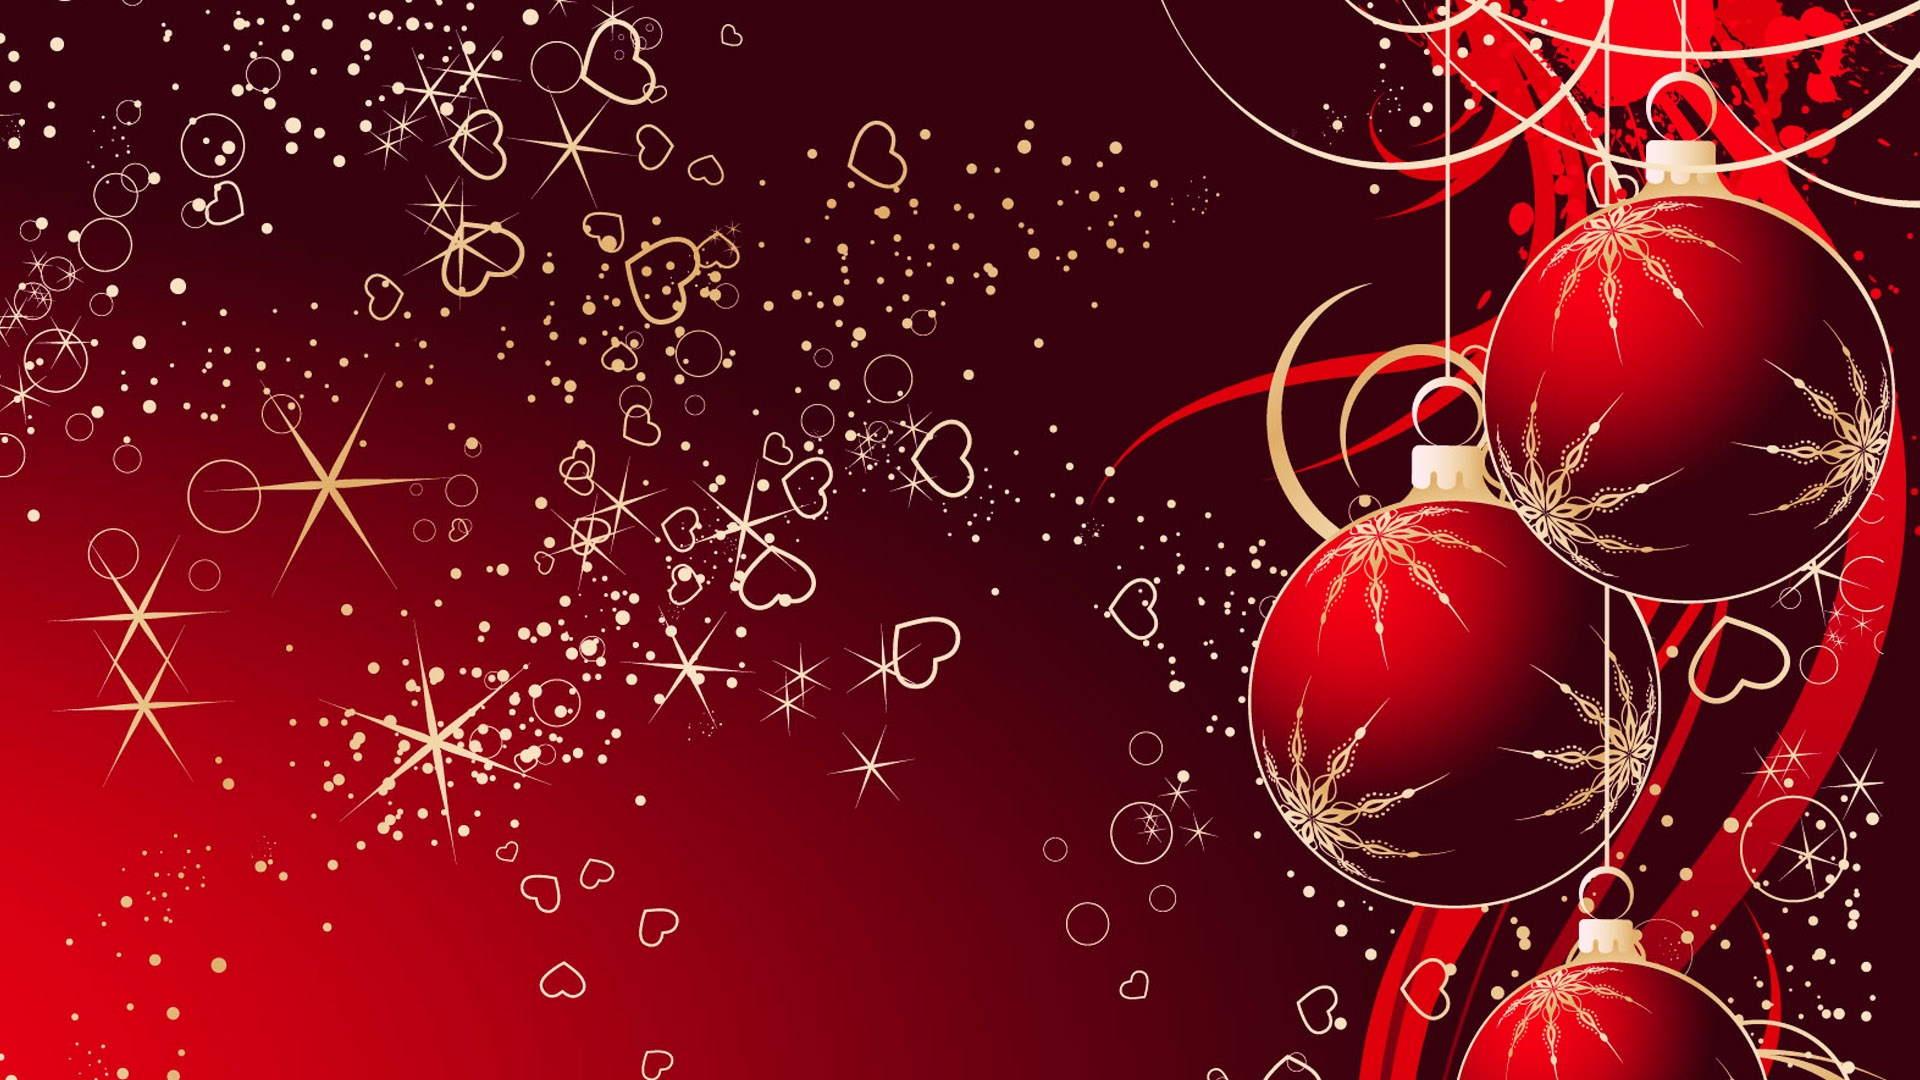 hd christmas wallpapers